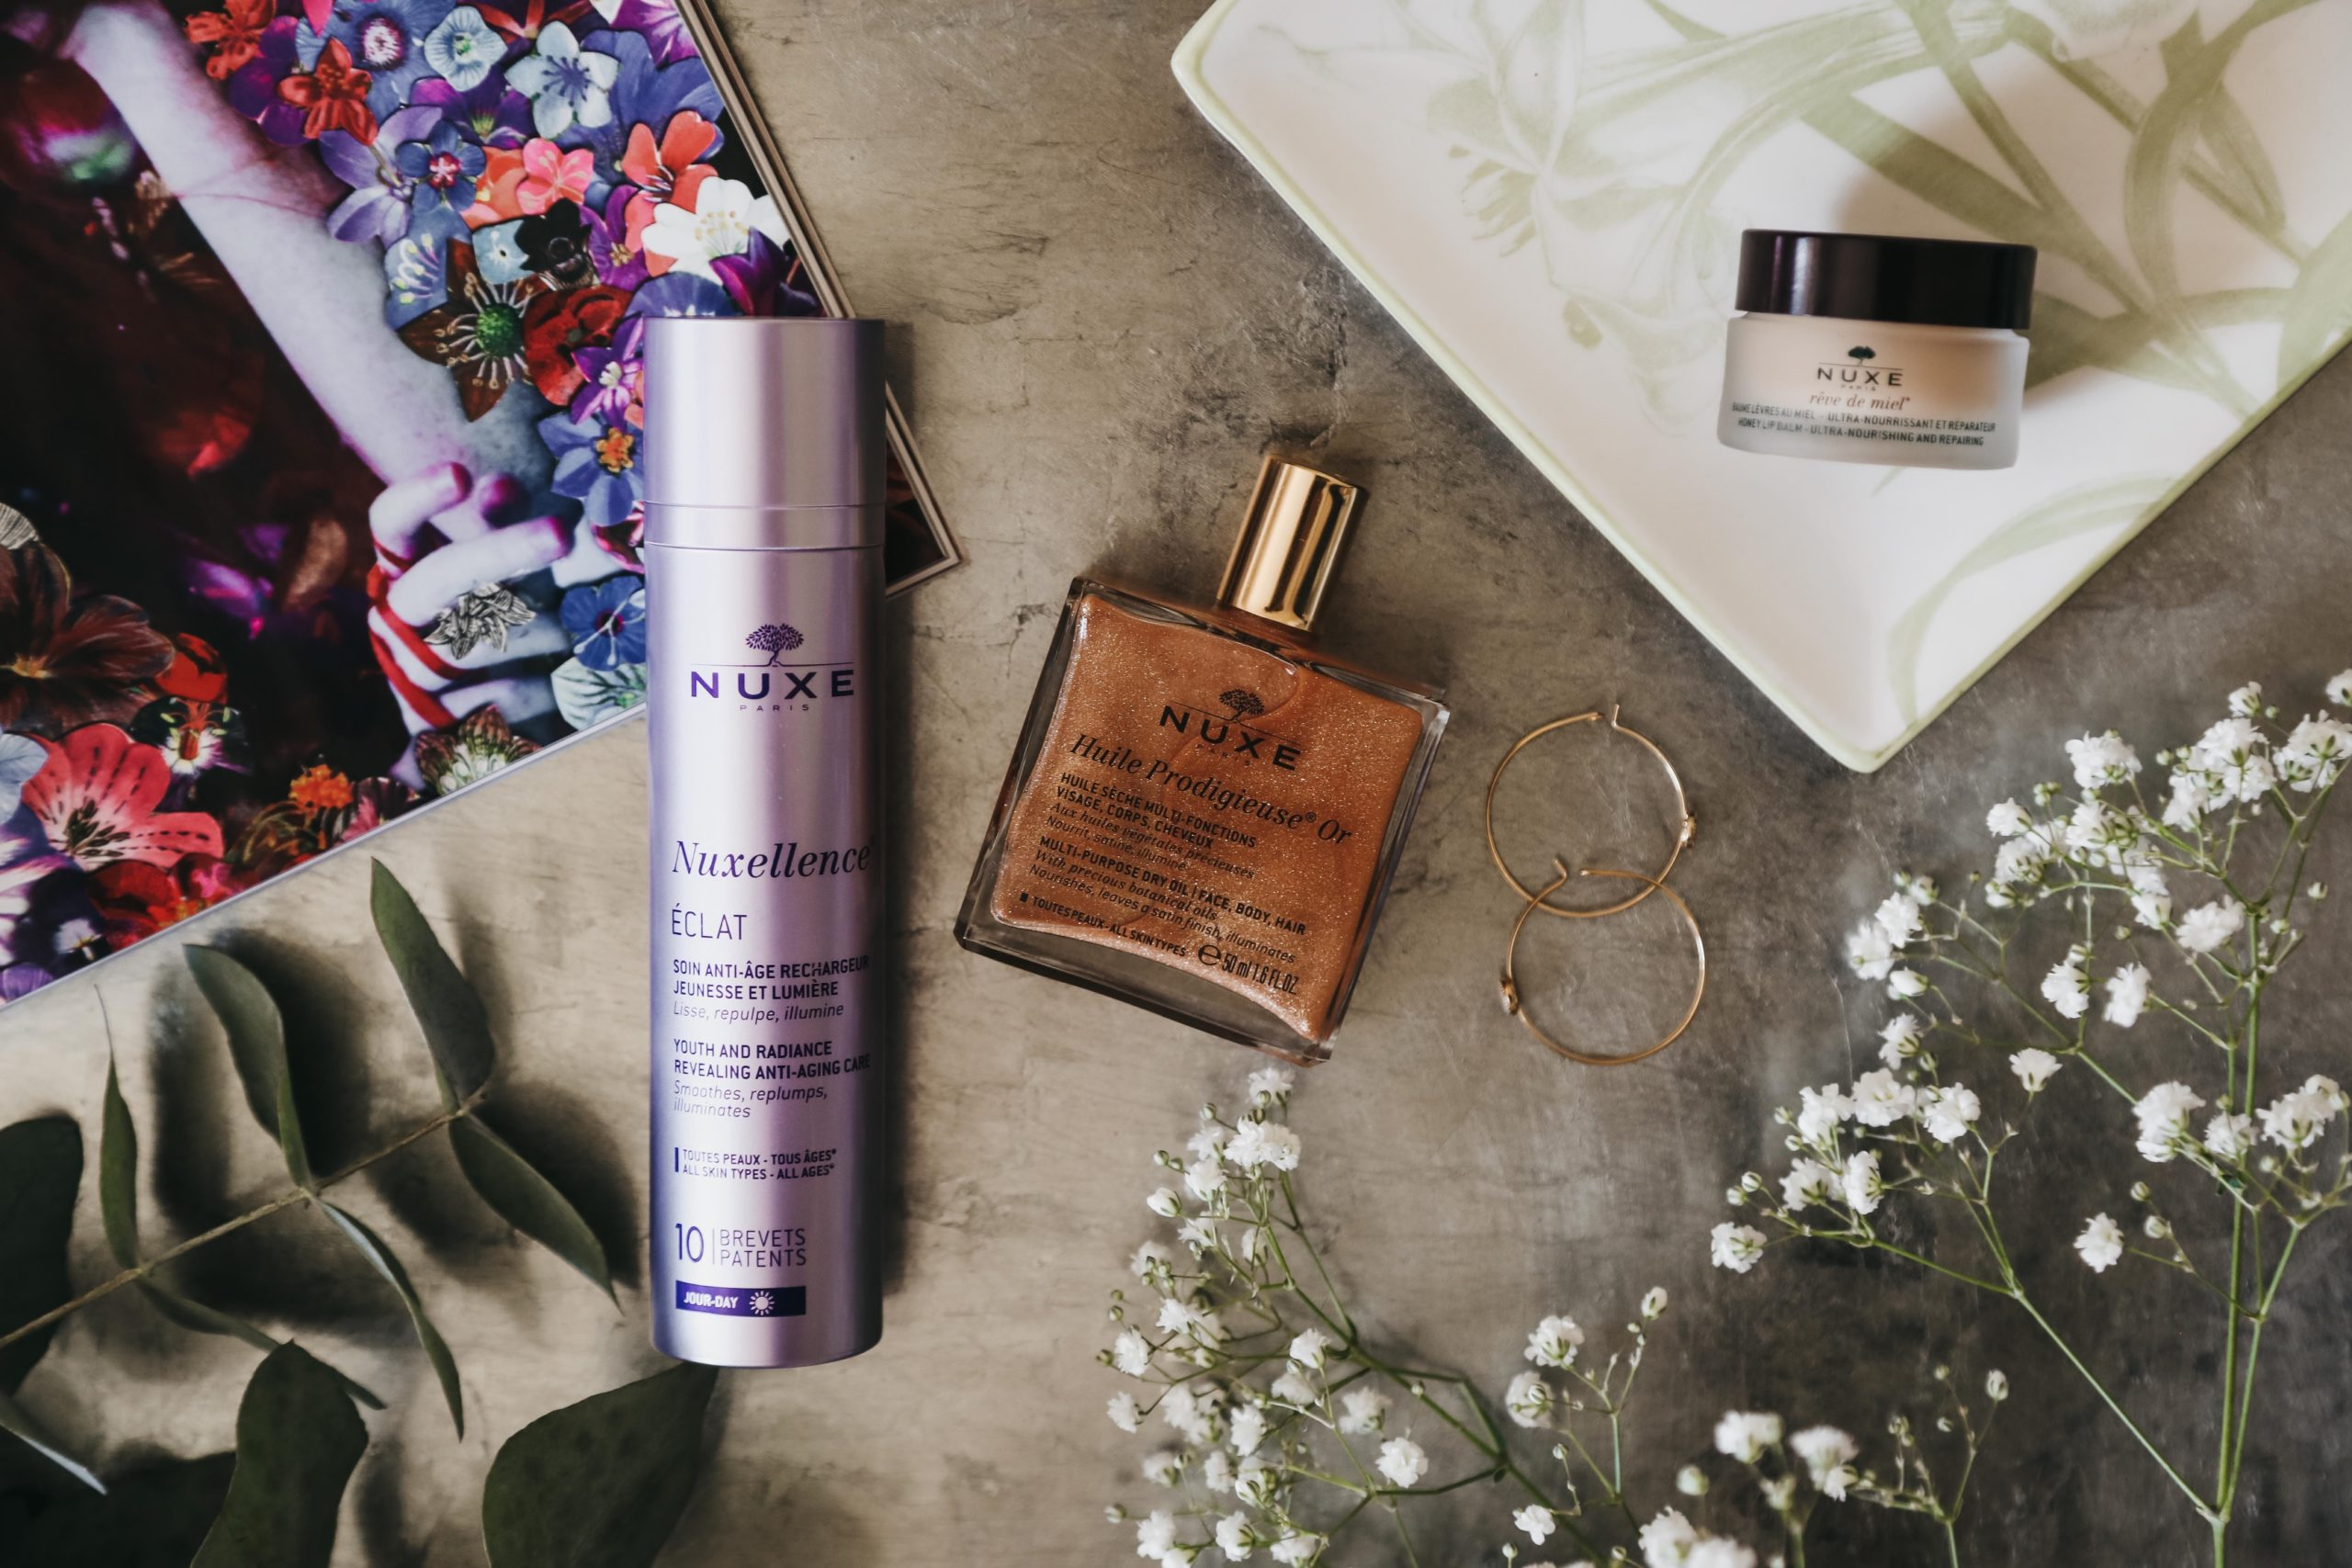 nuxe skincare